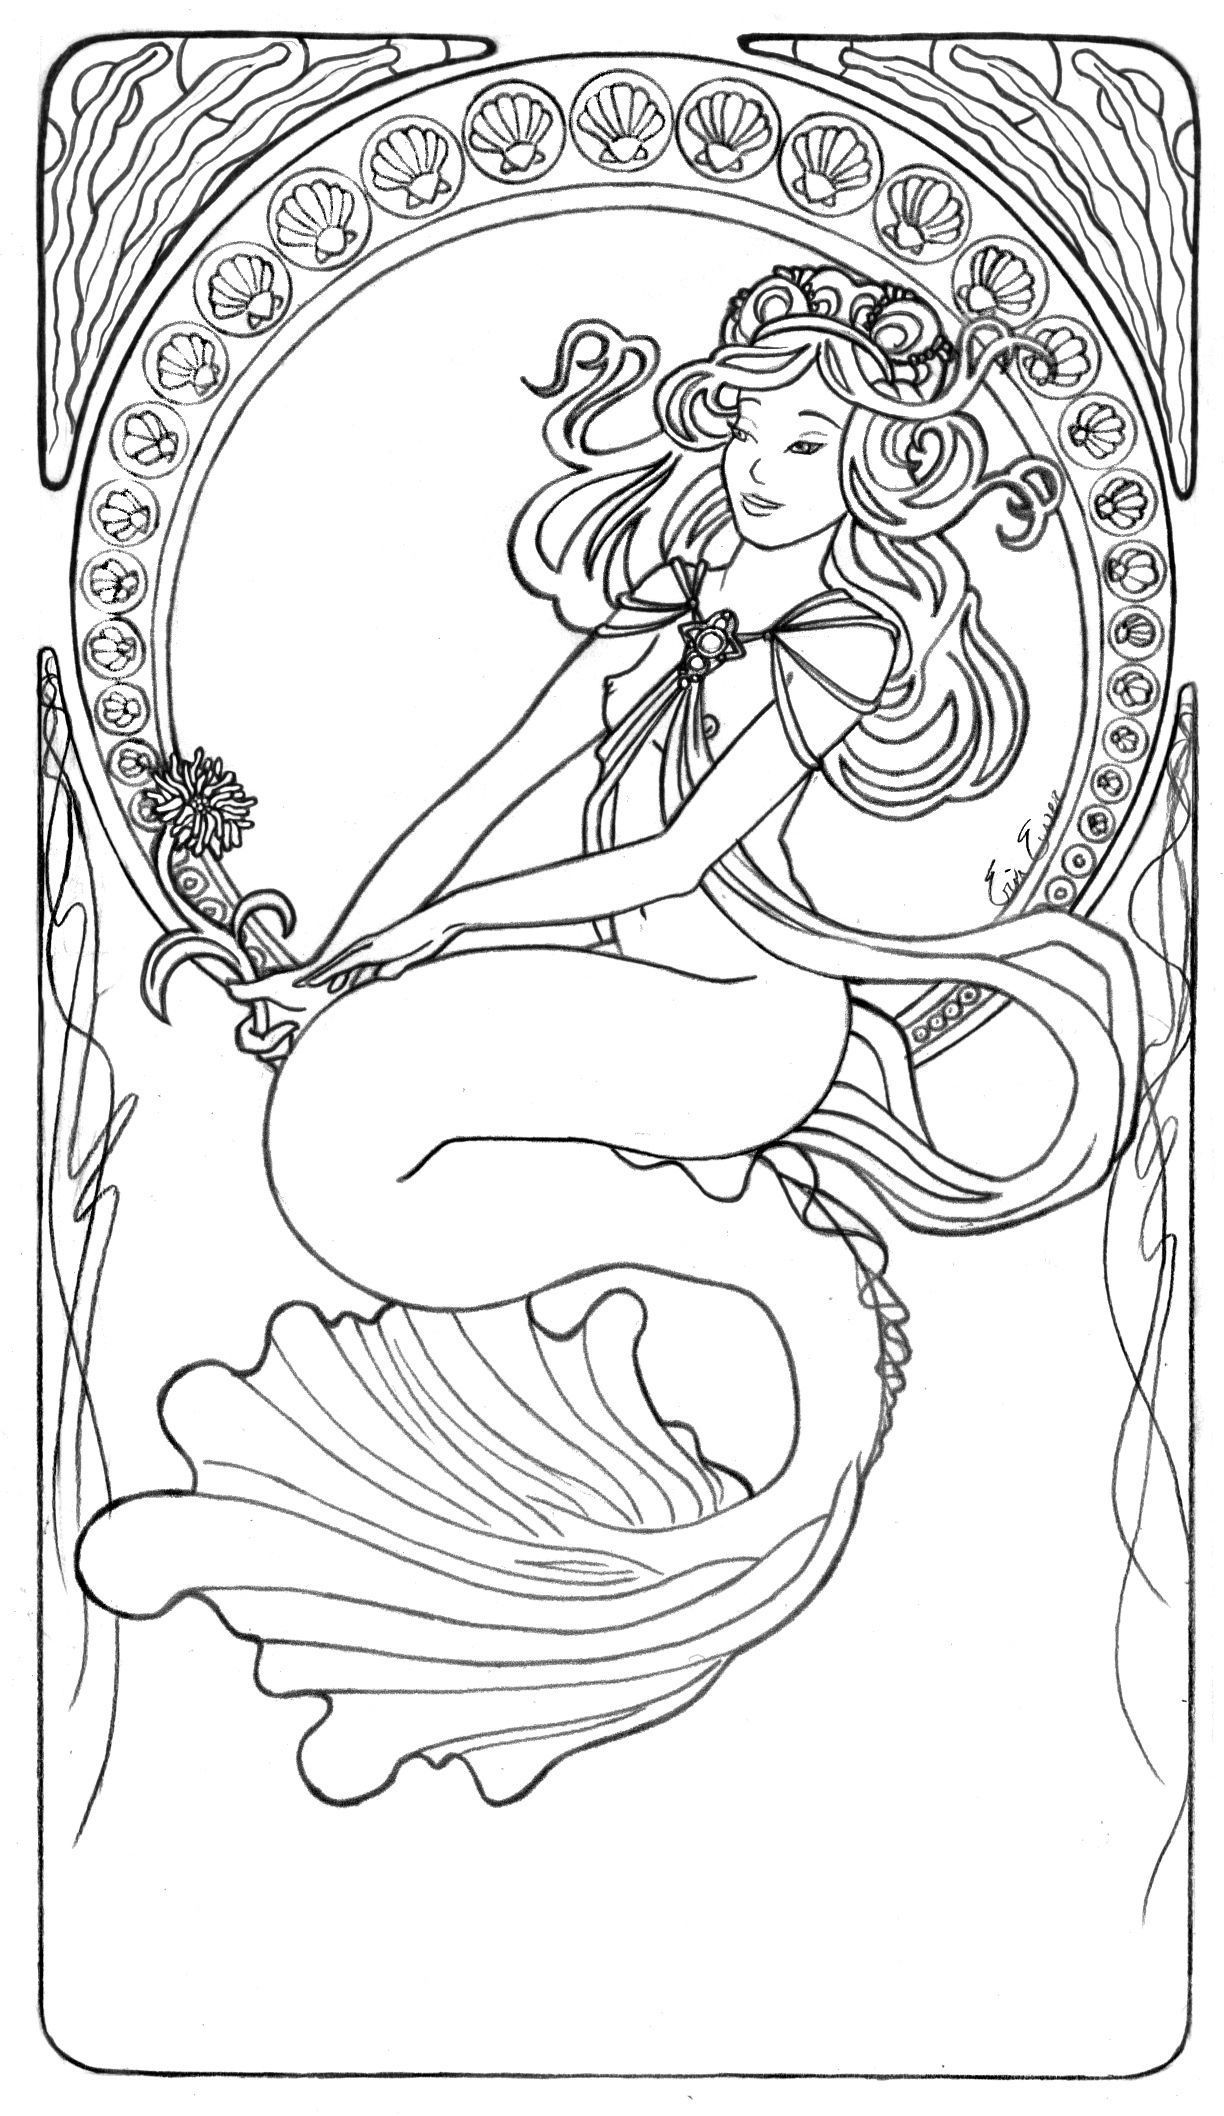 mermaid line art by liquidfaestudios on deviantart sirne free printable coloring pagescoloring